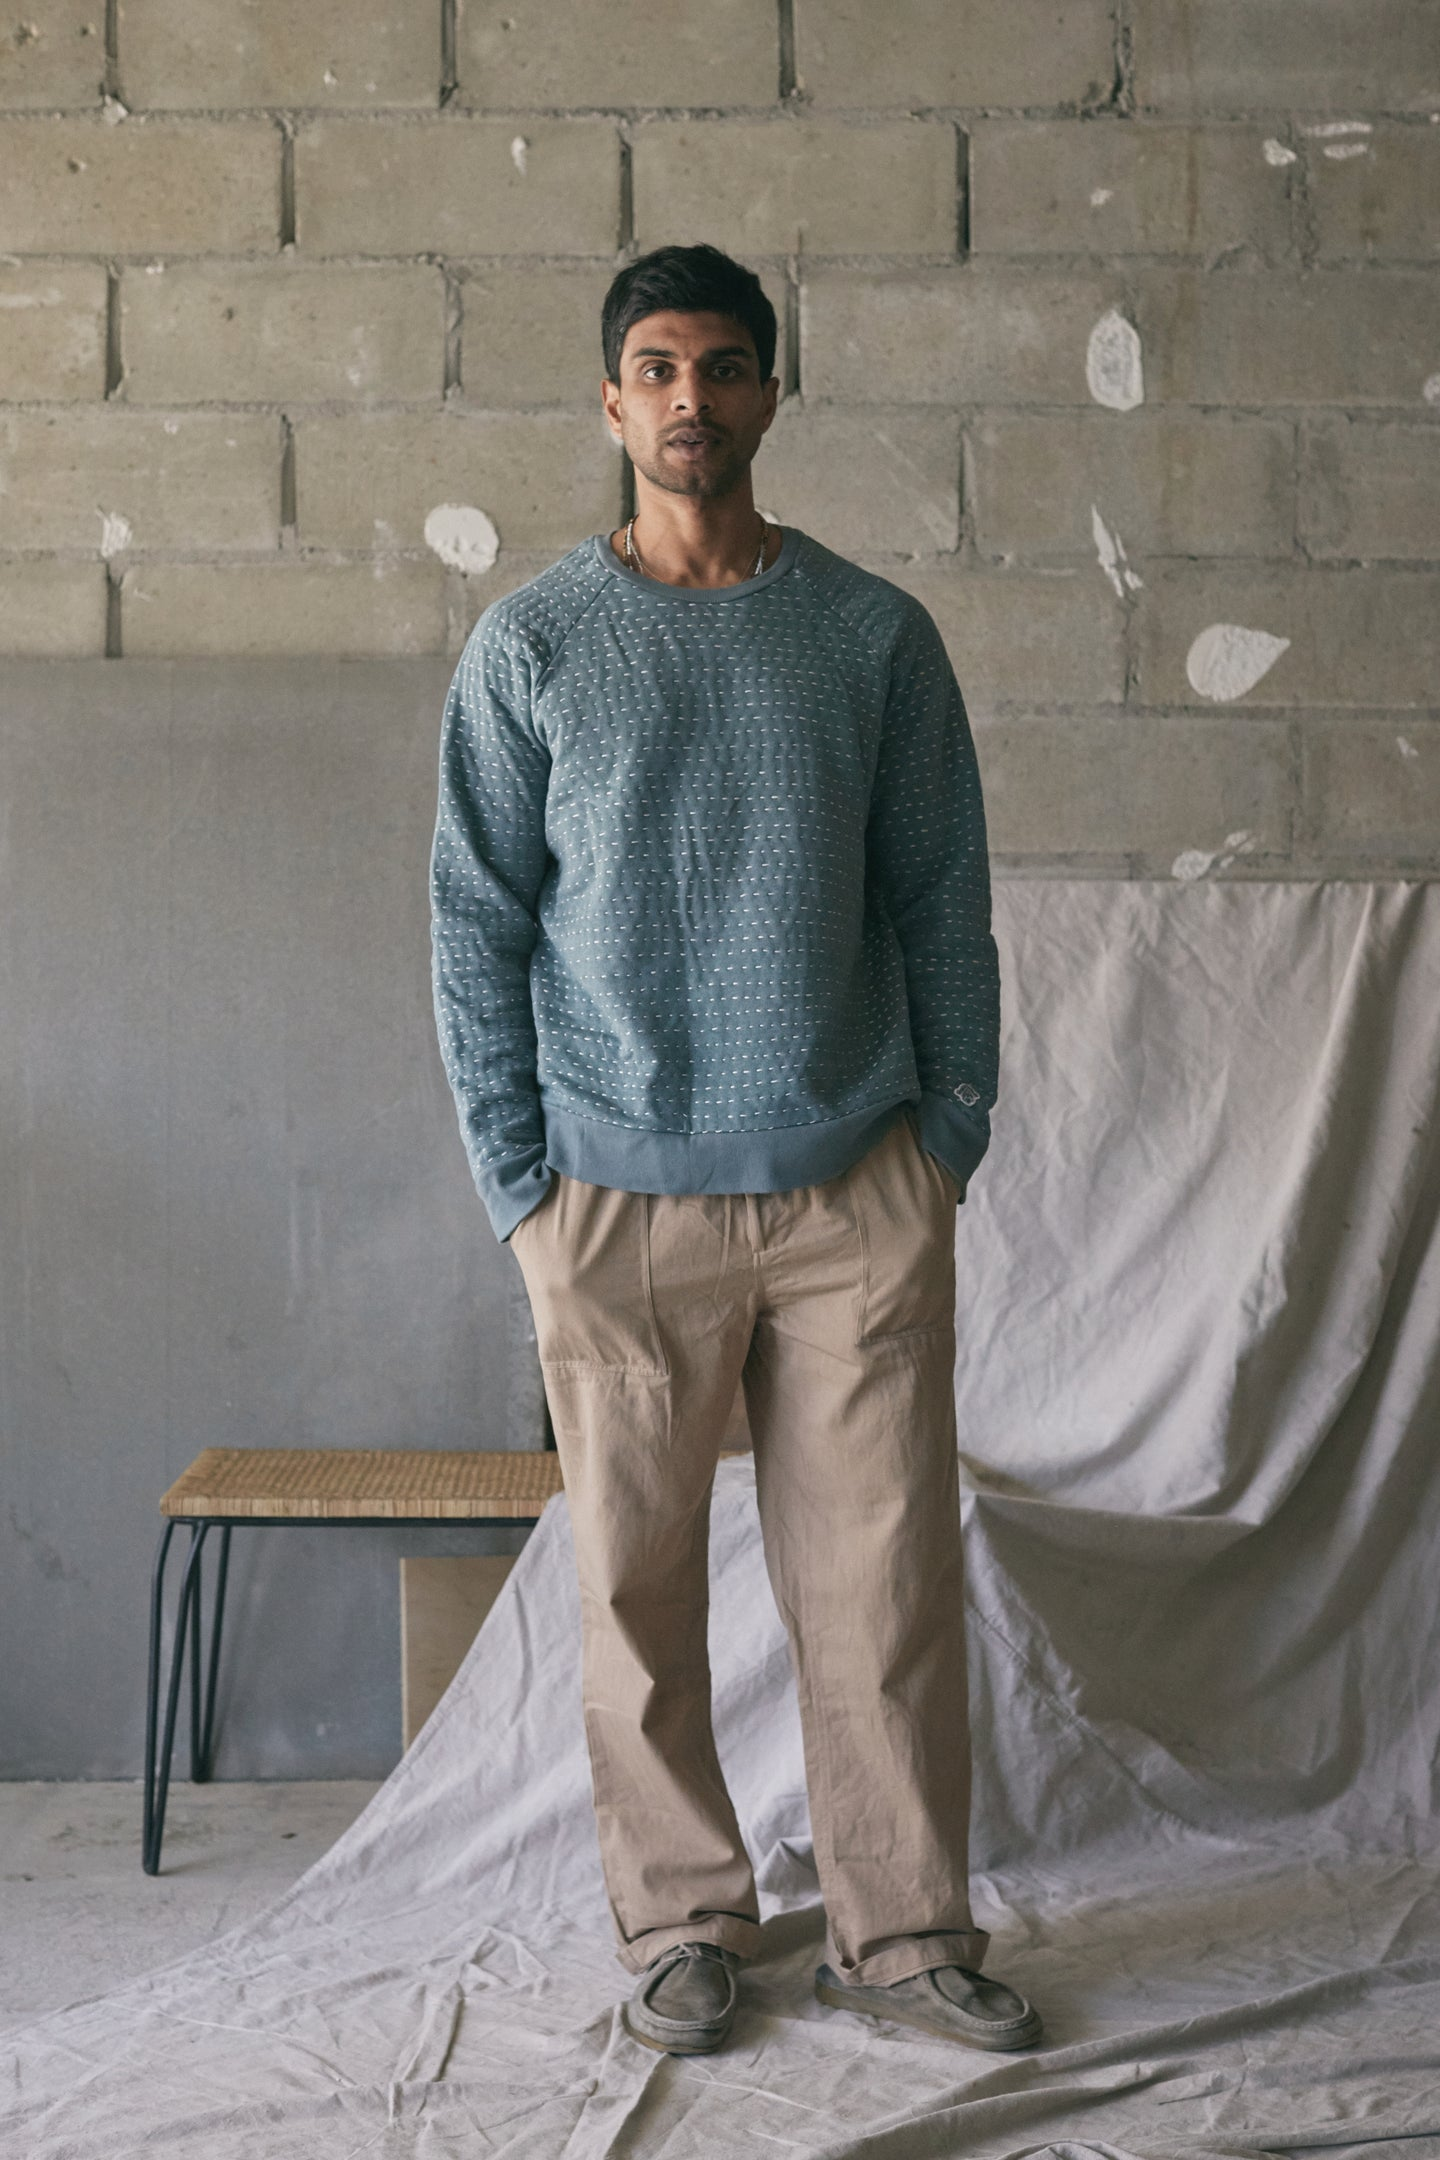 DAWA CREWNECK SWEATSHIRT - KANTHA STITCHED SAGE HEATHER